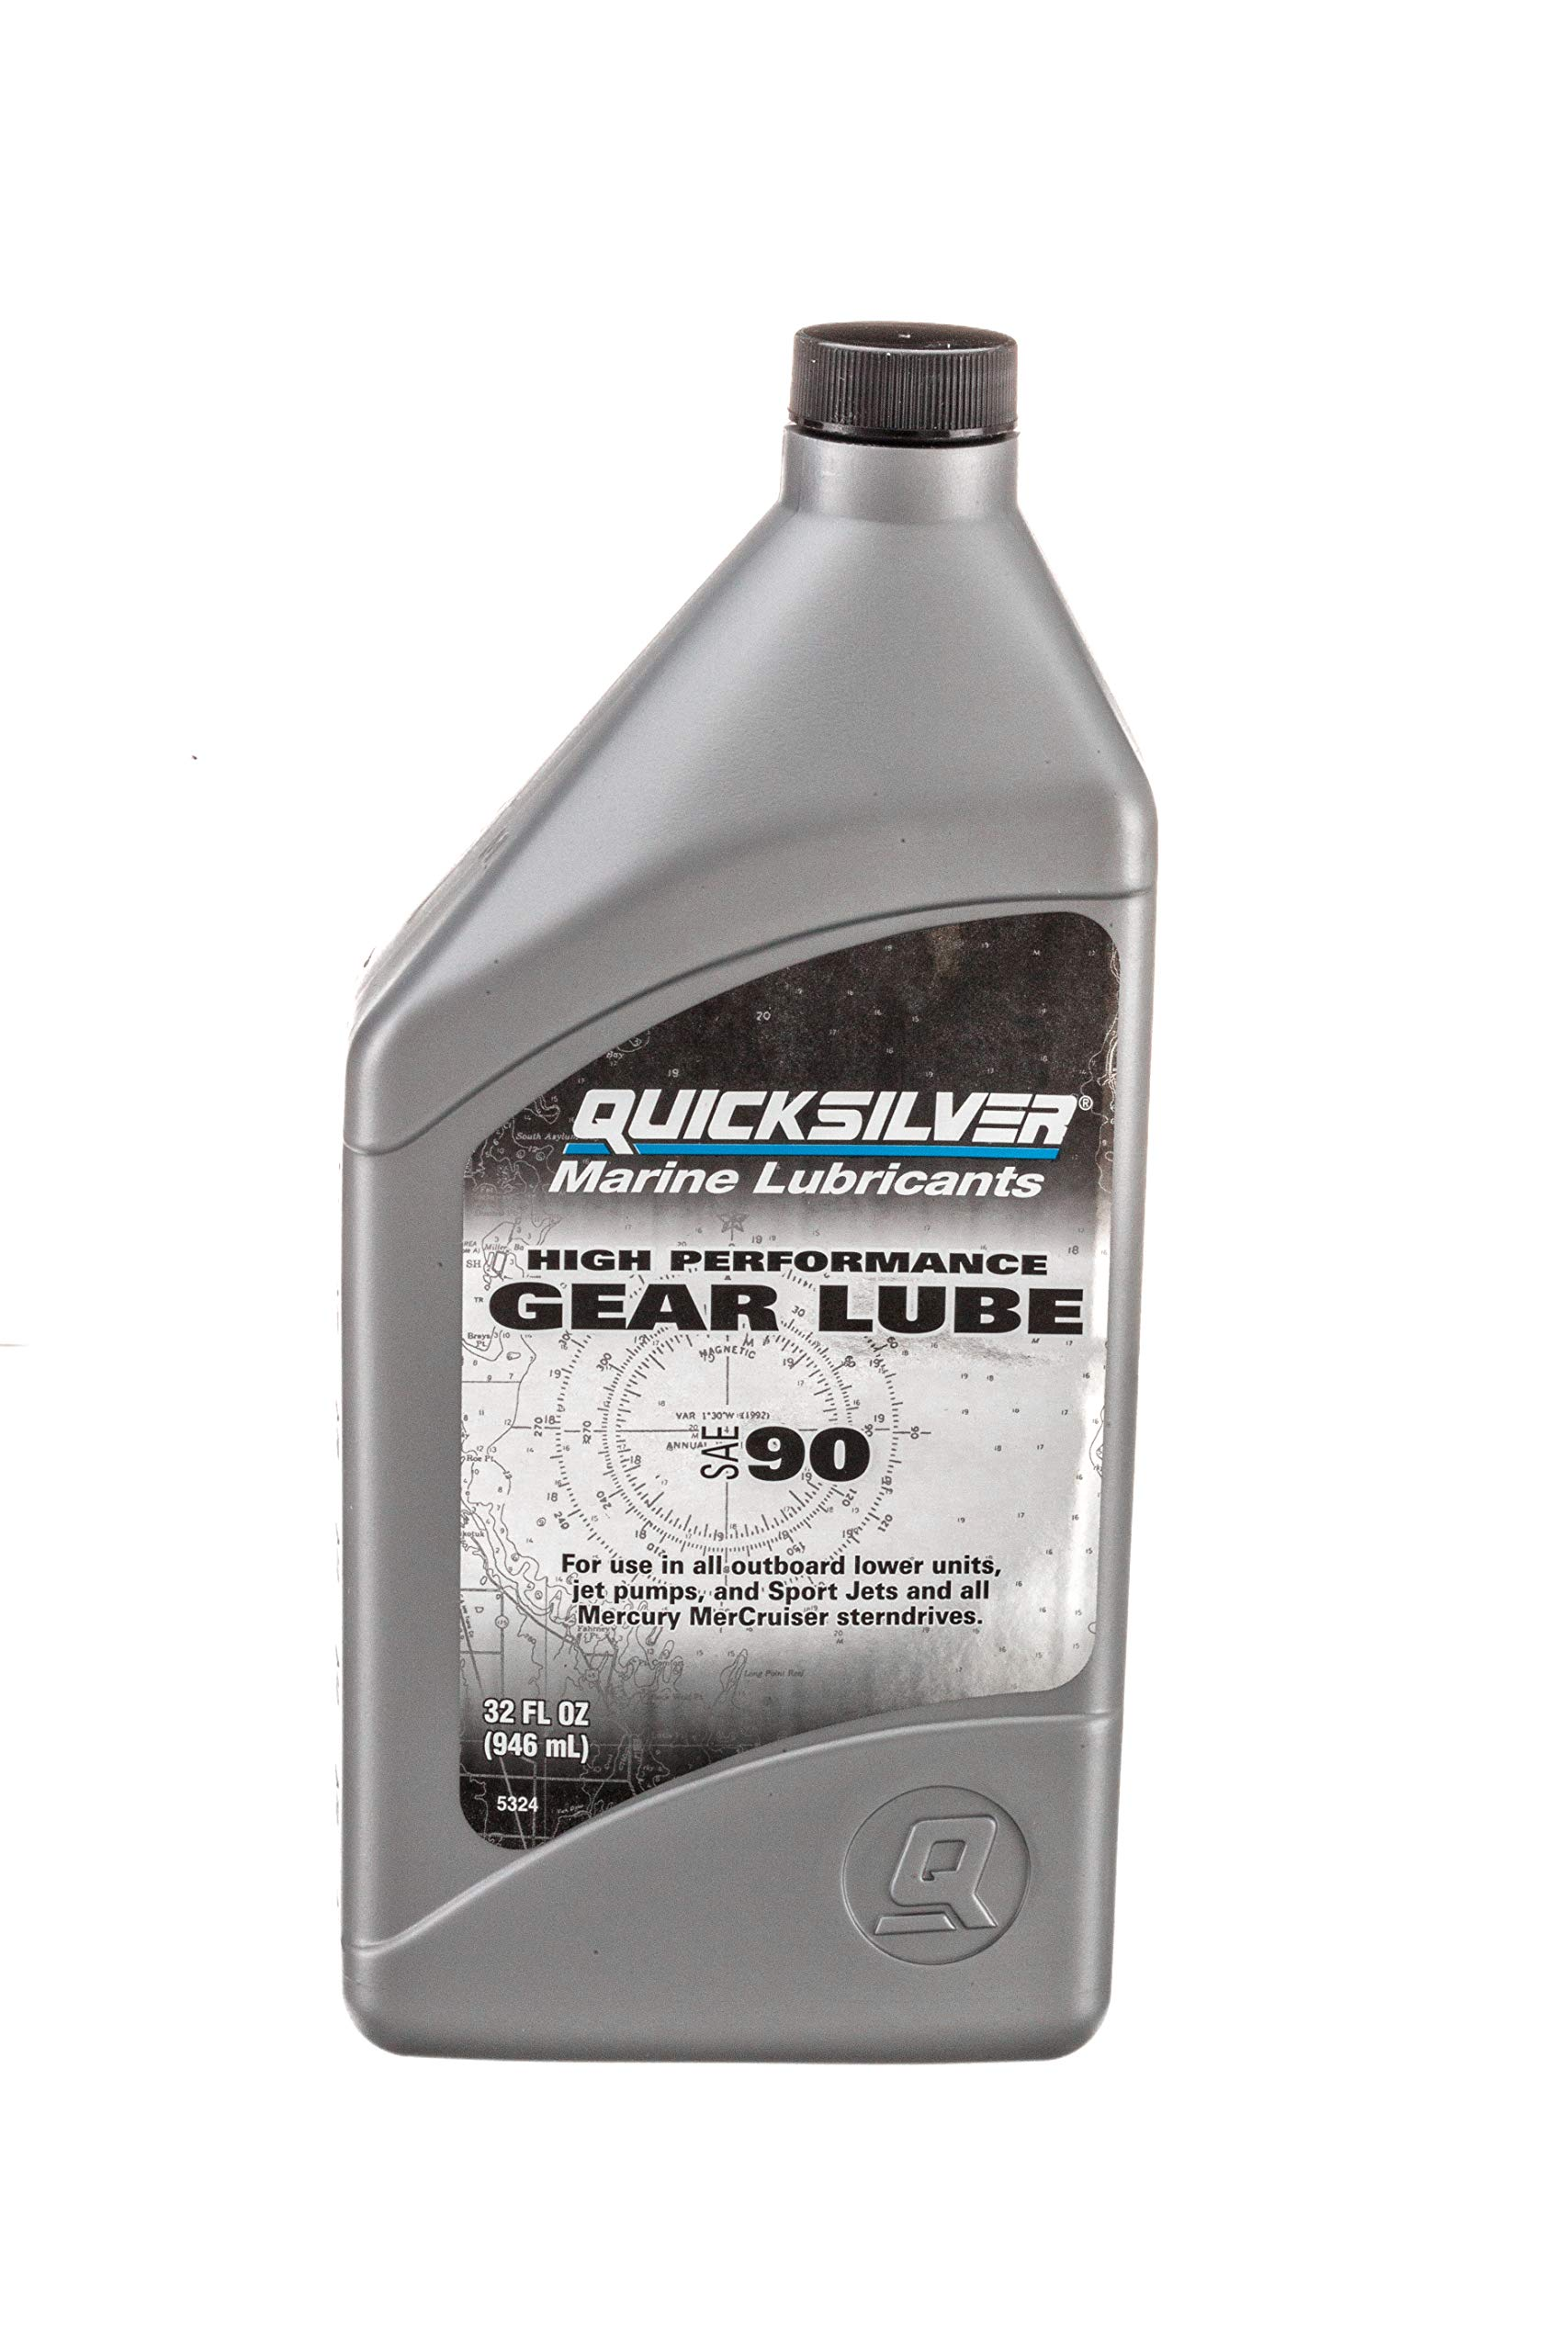 858064Q01 High Performance SAE 90 Gear Lube for Mercury Outboards and MerCruiser Sterndrives, 32 oz